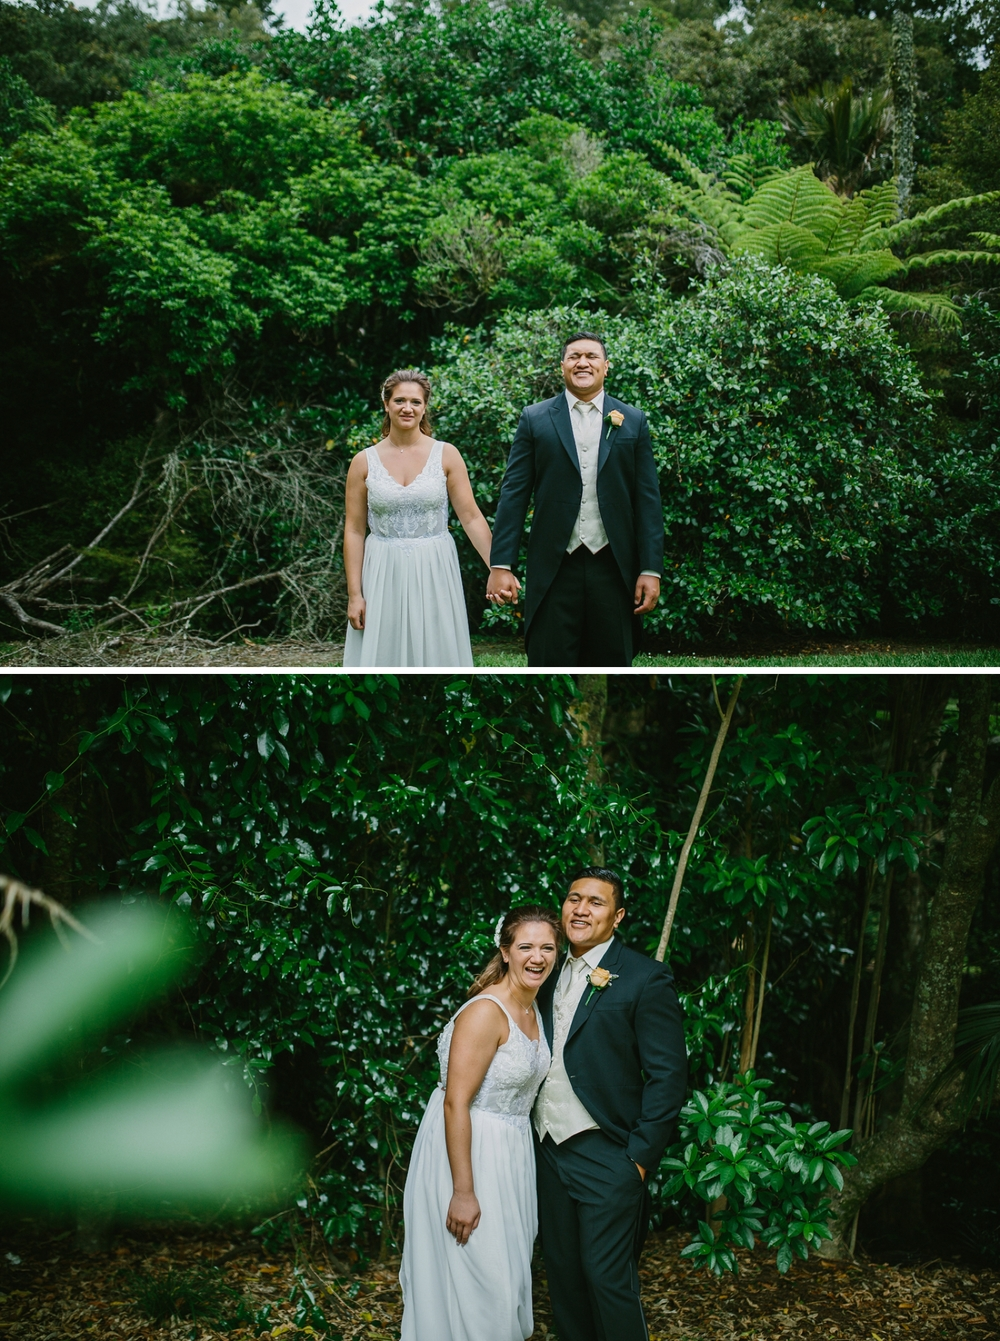 GabbyFiti_Auckland Wedding Photographer_Patty Lagera_0069.jpg